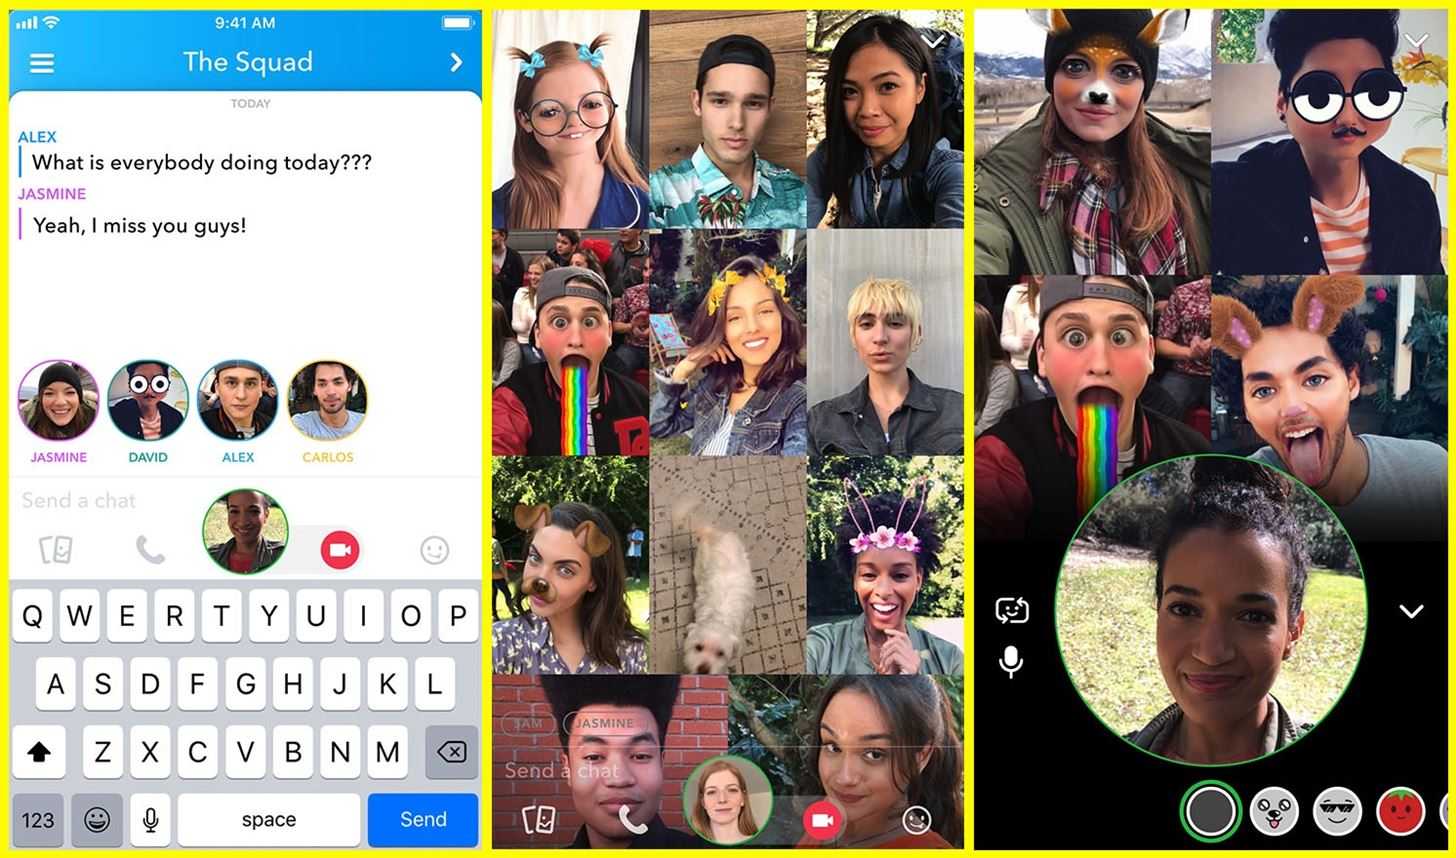 15 Awesome FaceTime Alternatives for Cross-Platform Video Calls on Android & iOS